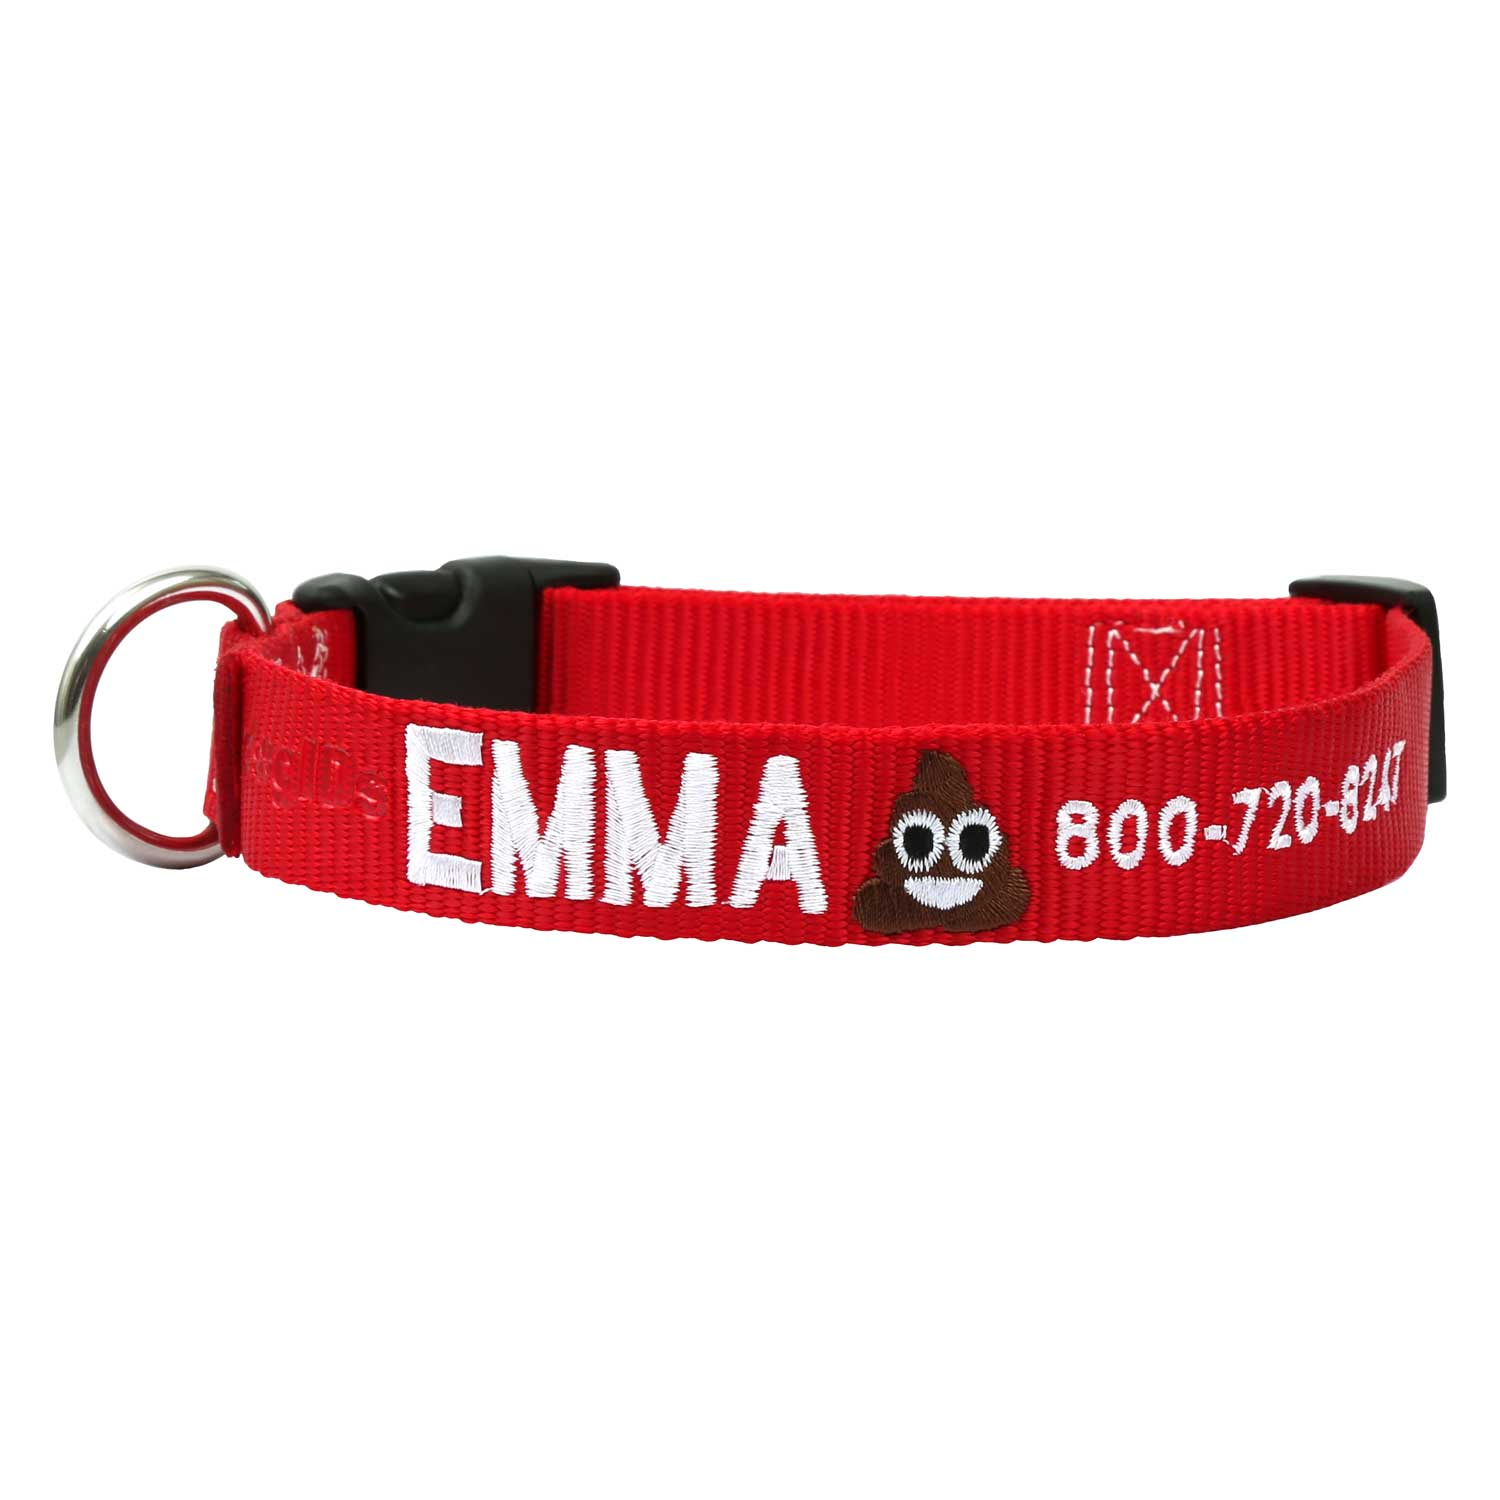 Custom Embroidered Emoji Dog Collar - Red Collar, White Thread, Pile of Poo Emoji